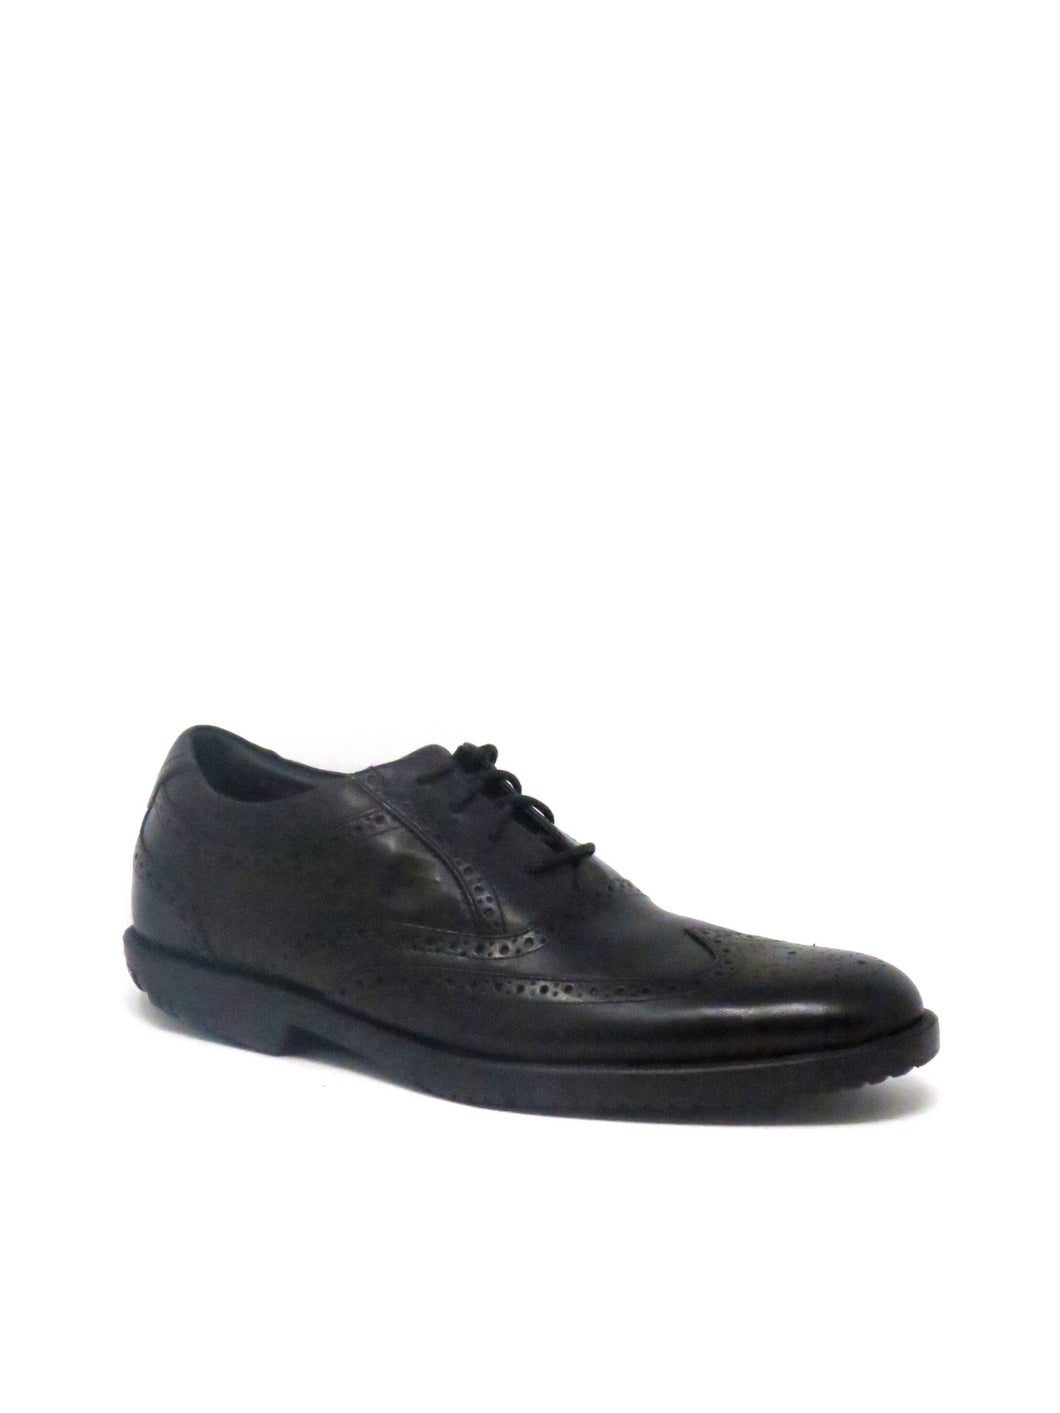 Rockport | K57953 | Dressports truWALK Wingtip | Black